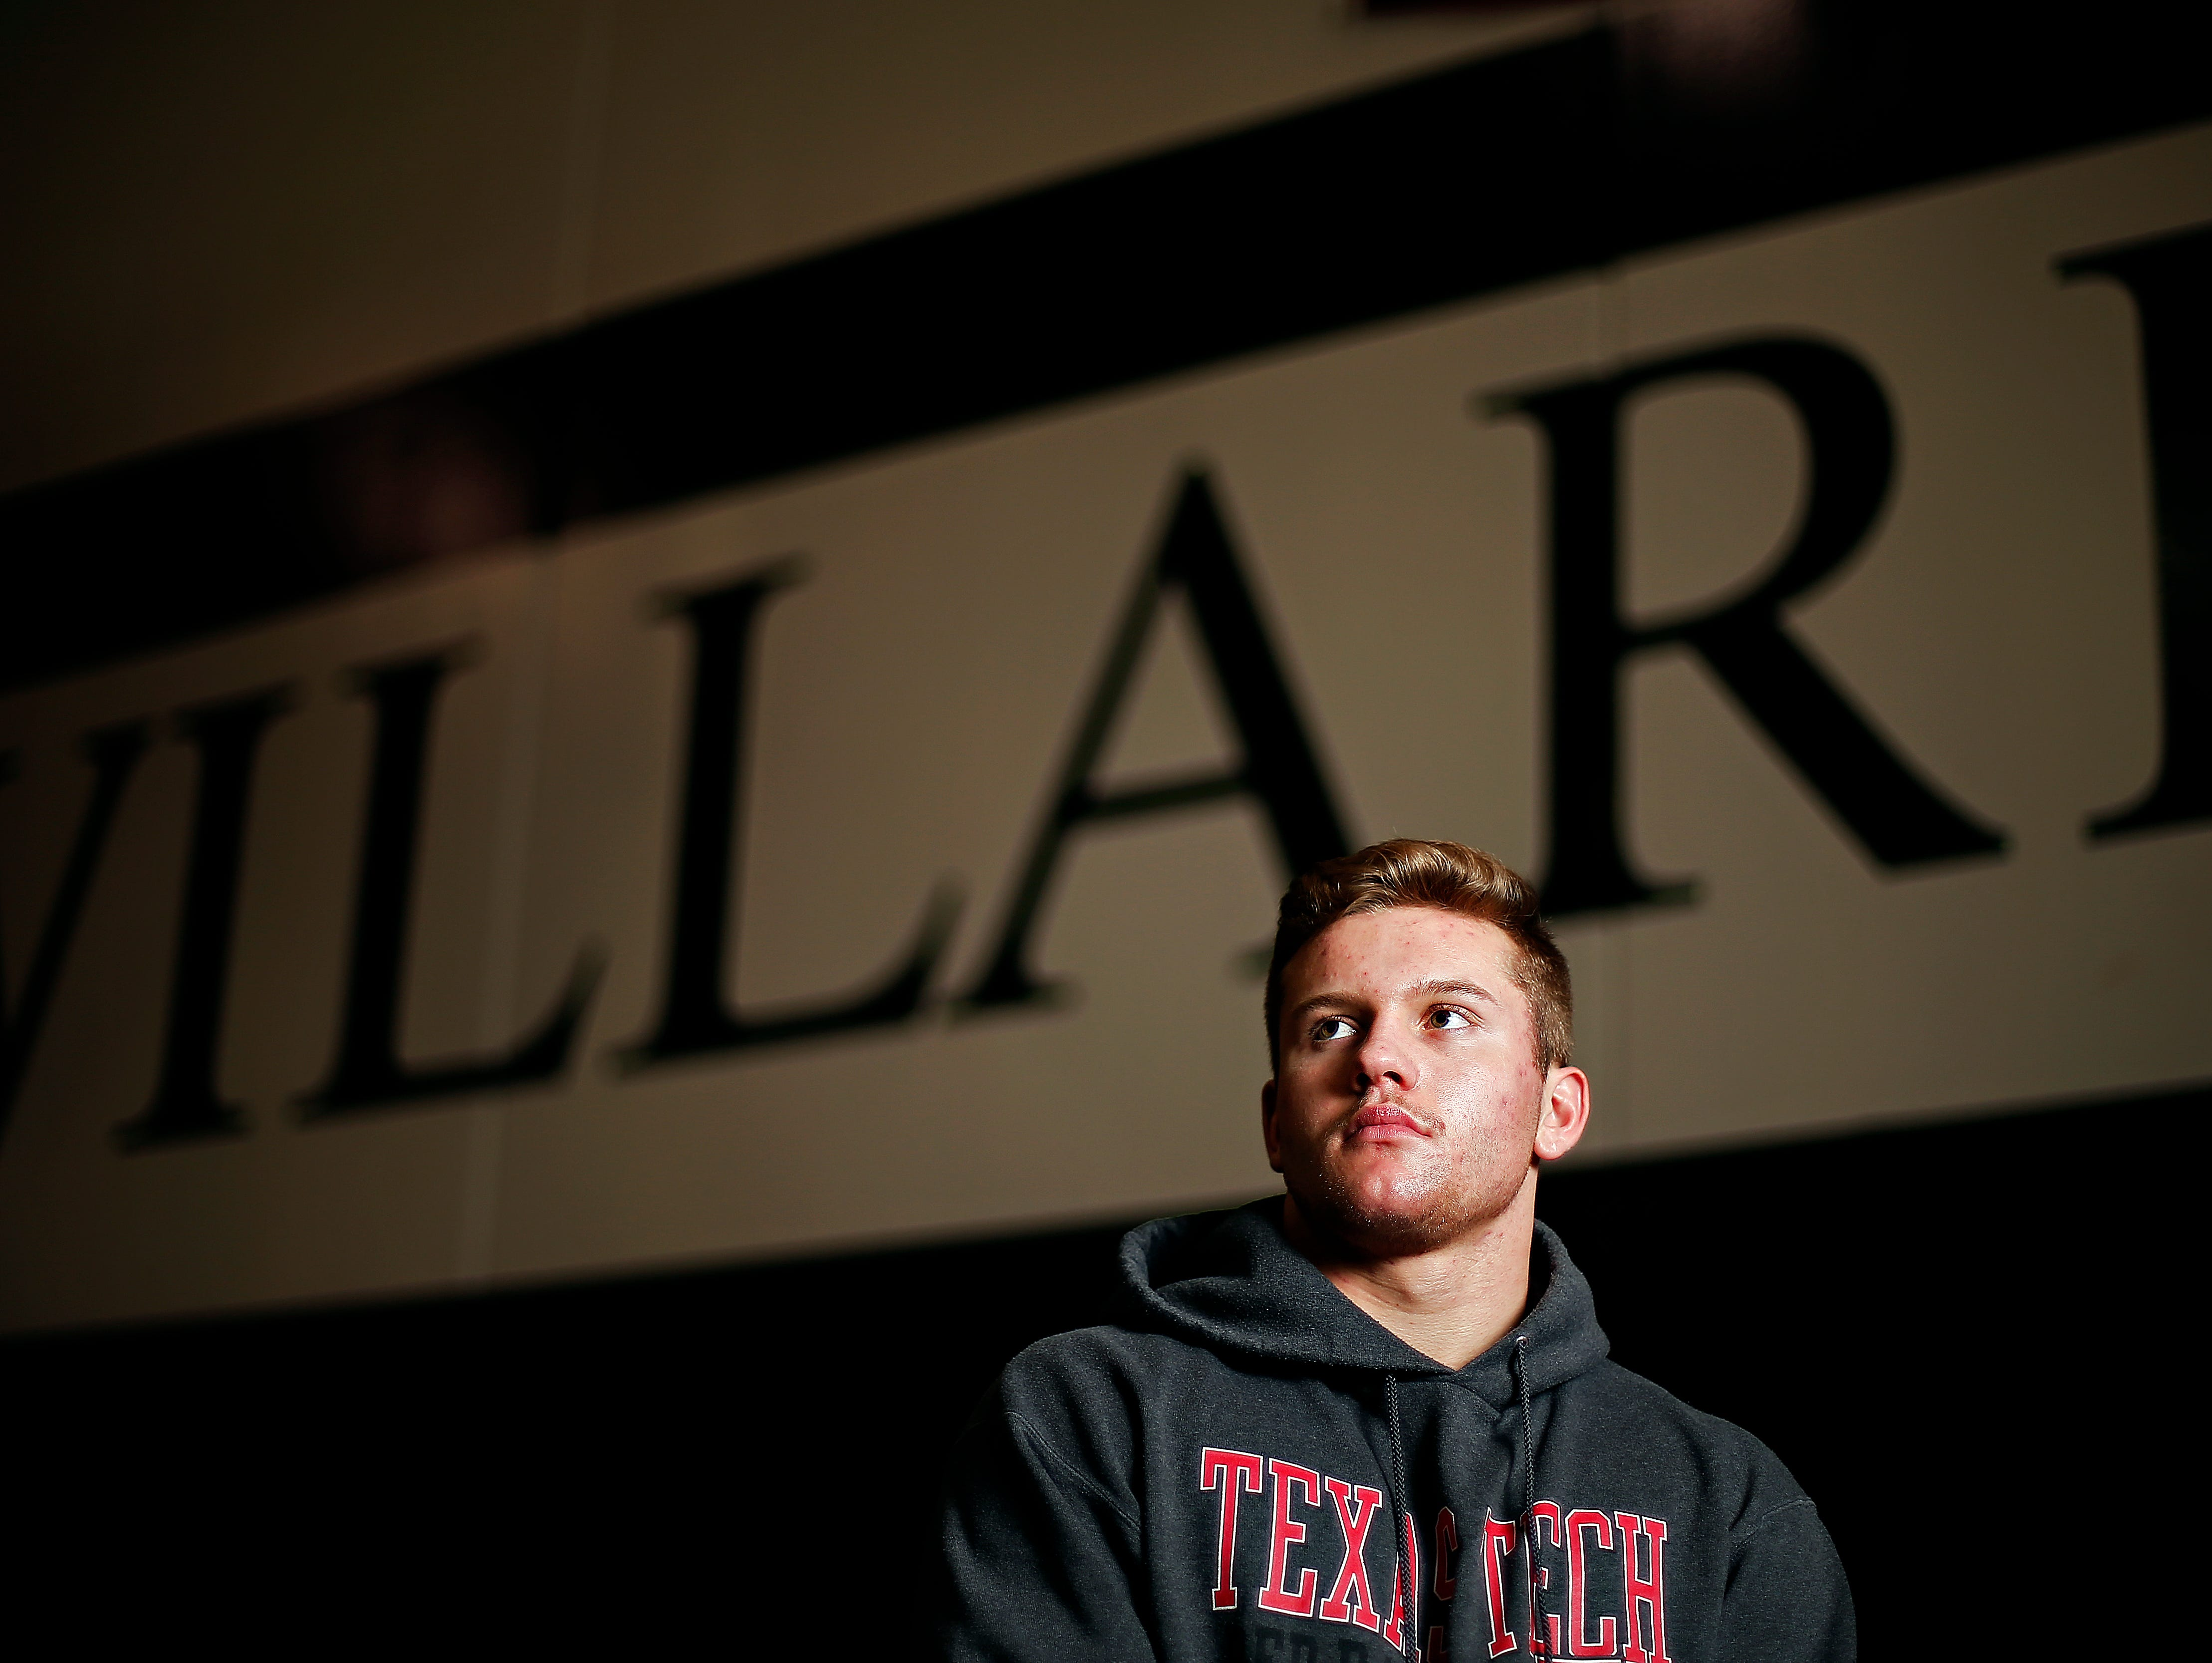 Hunter Yeargan has not lost a match during his senior year wrestling for Willard High School, and has only lost 10 matches in his four year career for the Tigers. He posed for a portrait at the school in Willard, Mo. on Feb. 16, 2016 as he trains for his upcoming trip to the state tournament.